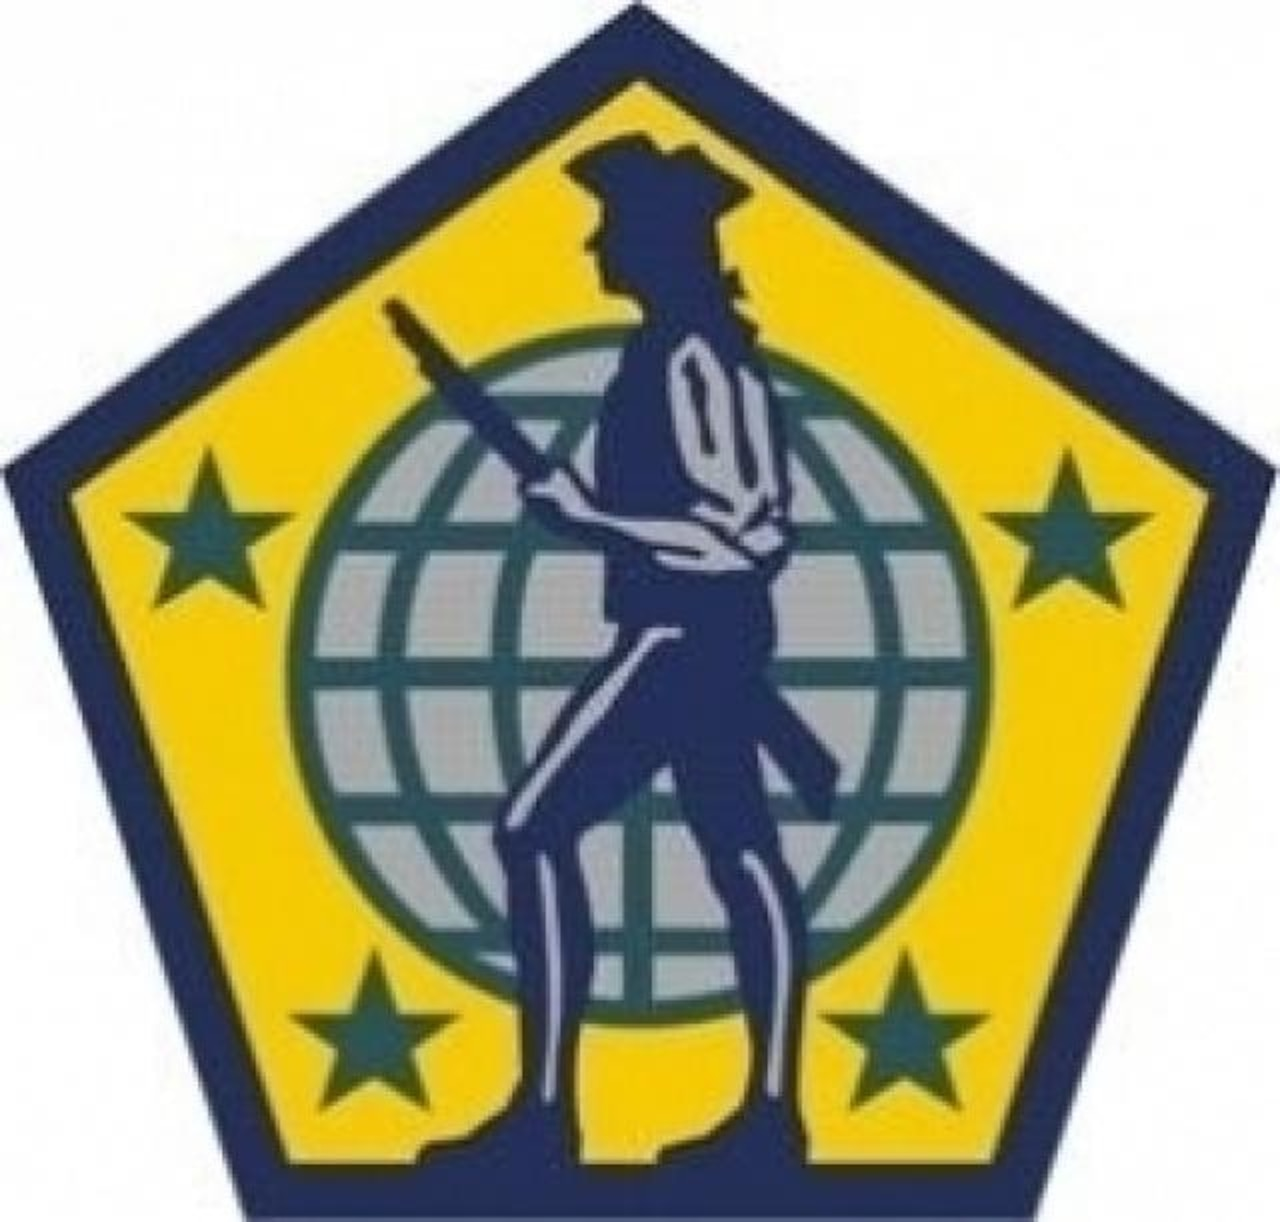 U.S. Army Human Resources Command shoulder sleeve emblem. U.S. Army graphic